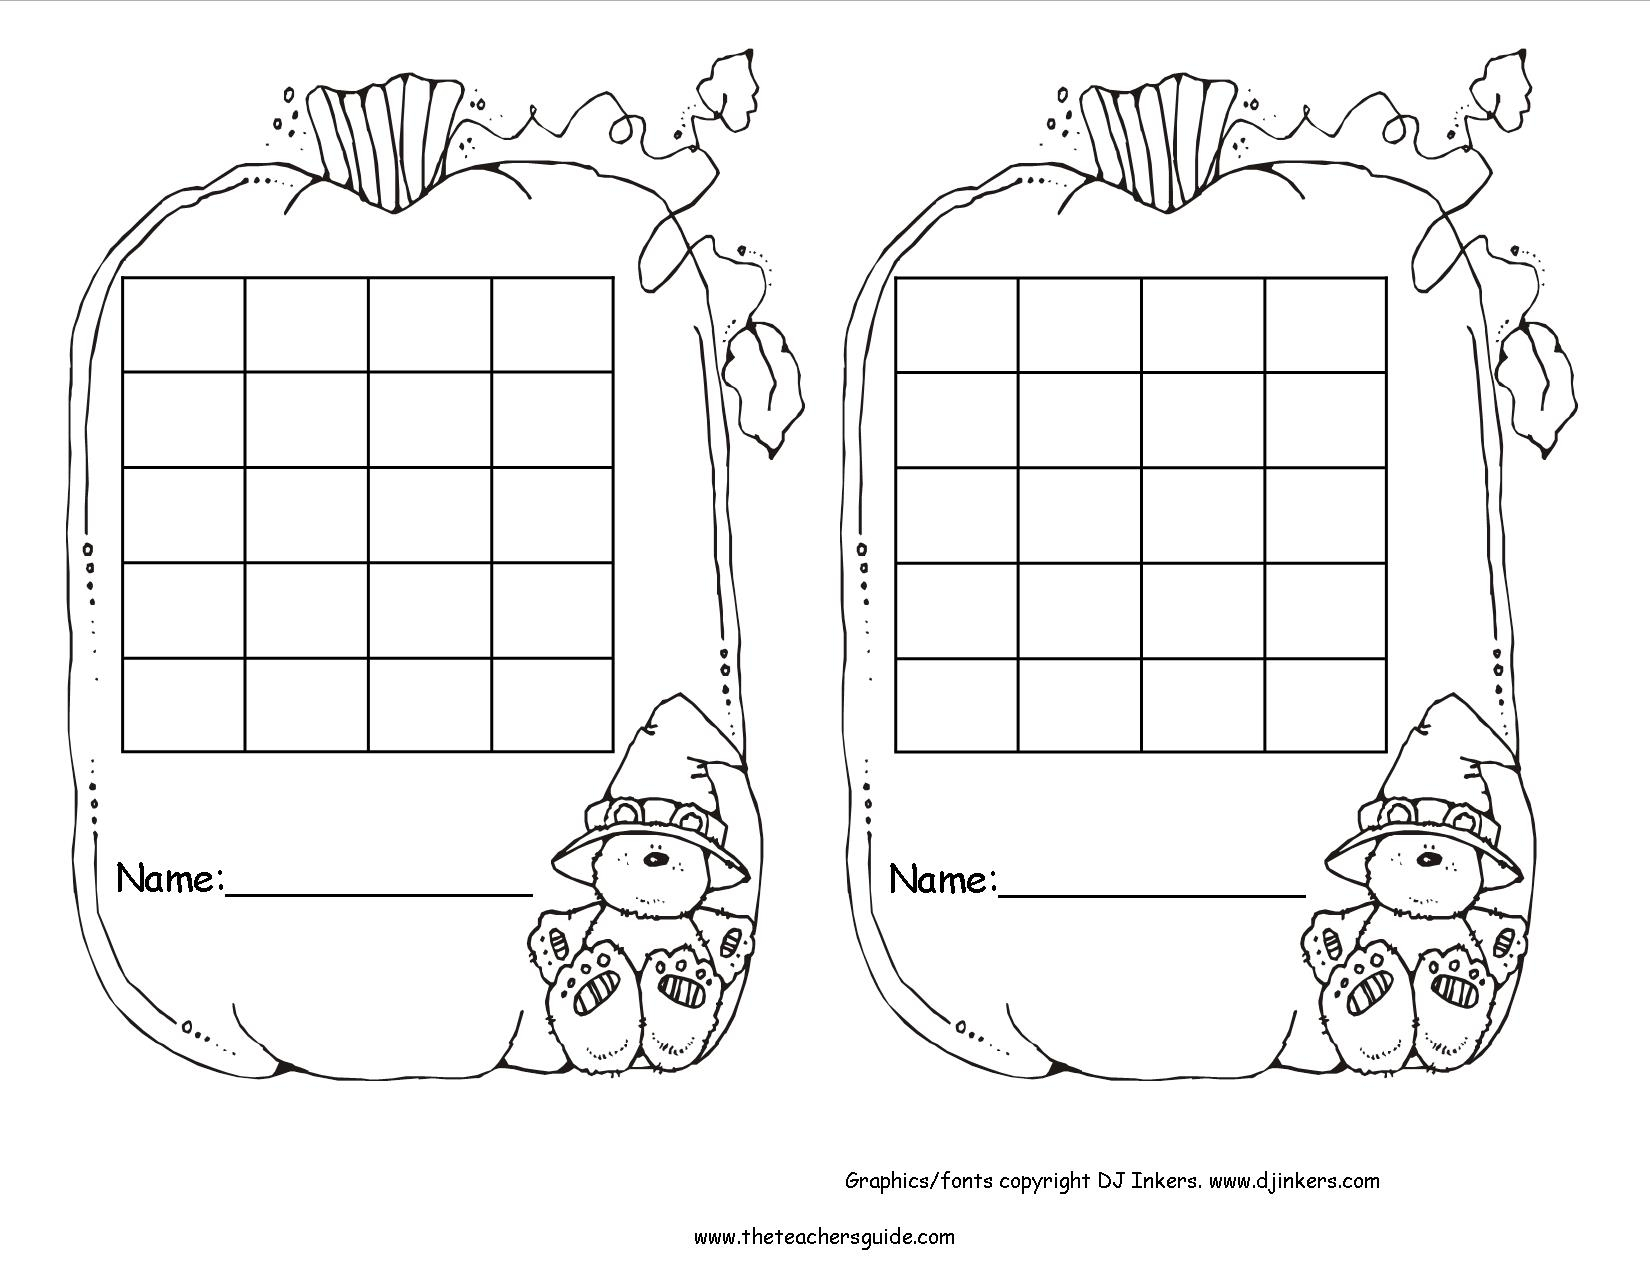 Free Printable Reward And Incentive Charts within Blank Behavior Charts For September